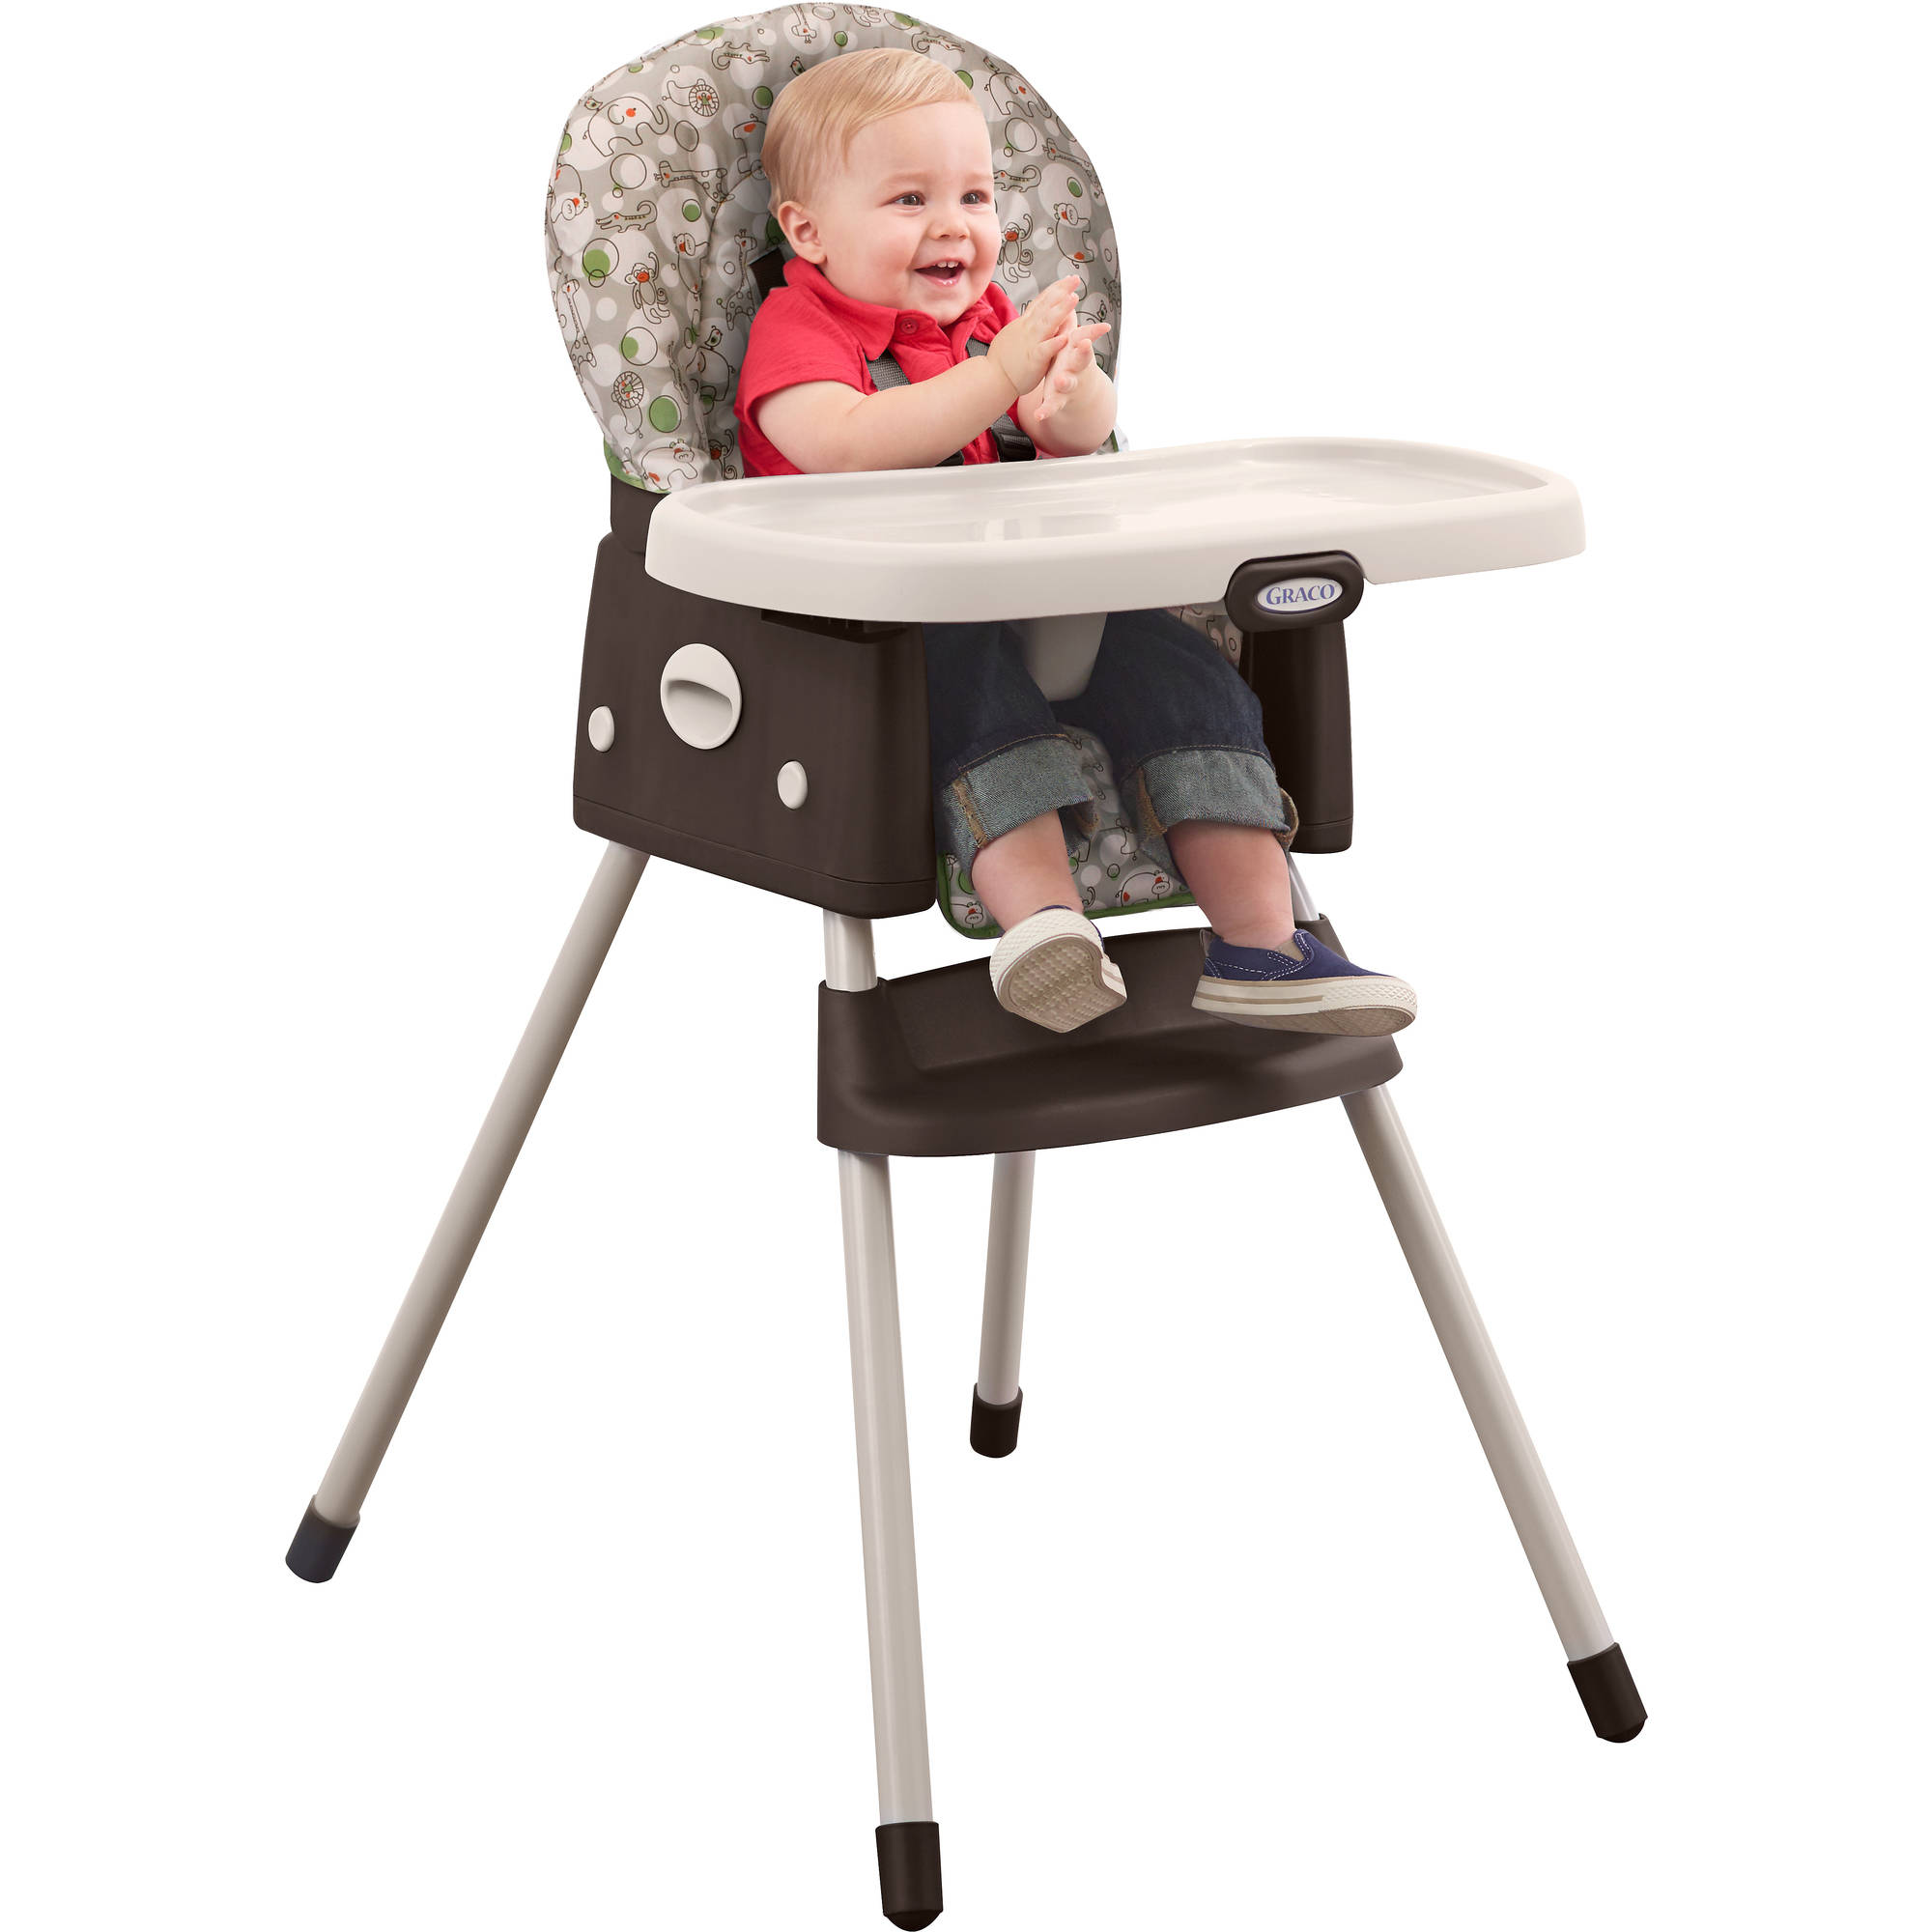 High Chair Fisher Price Graco Simpleswitch 2 In 1 High Chair Zuba Ebay